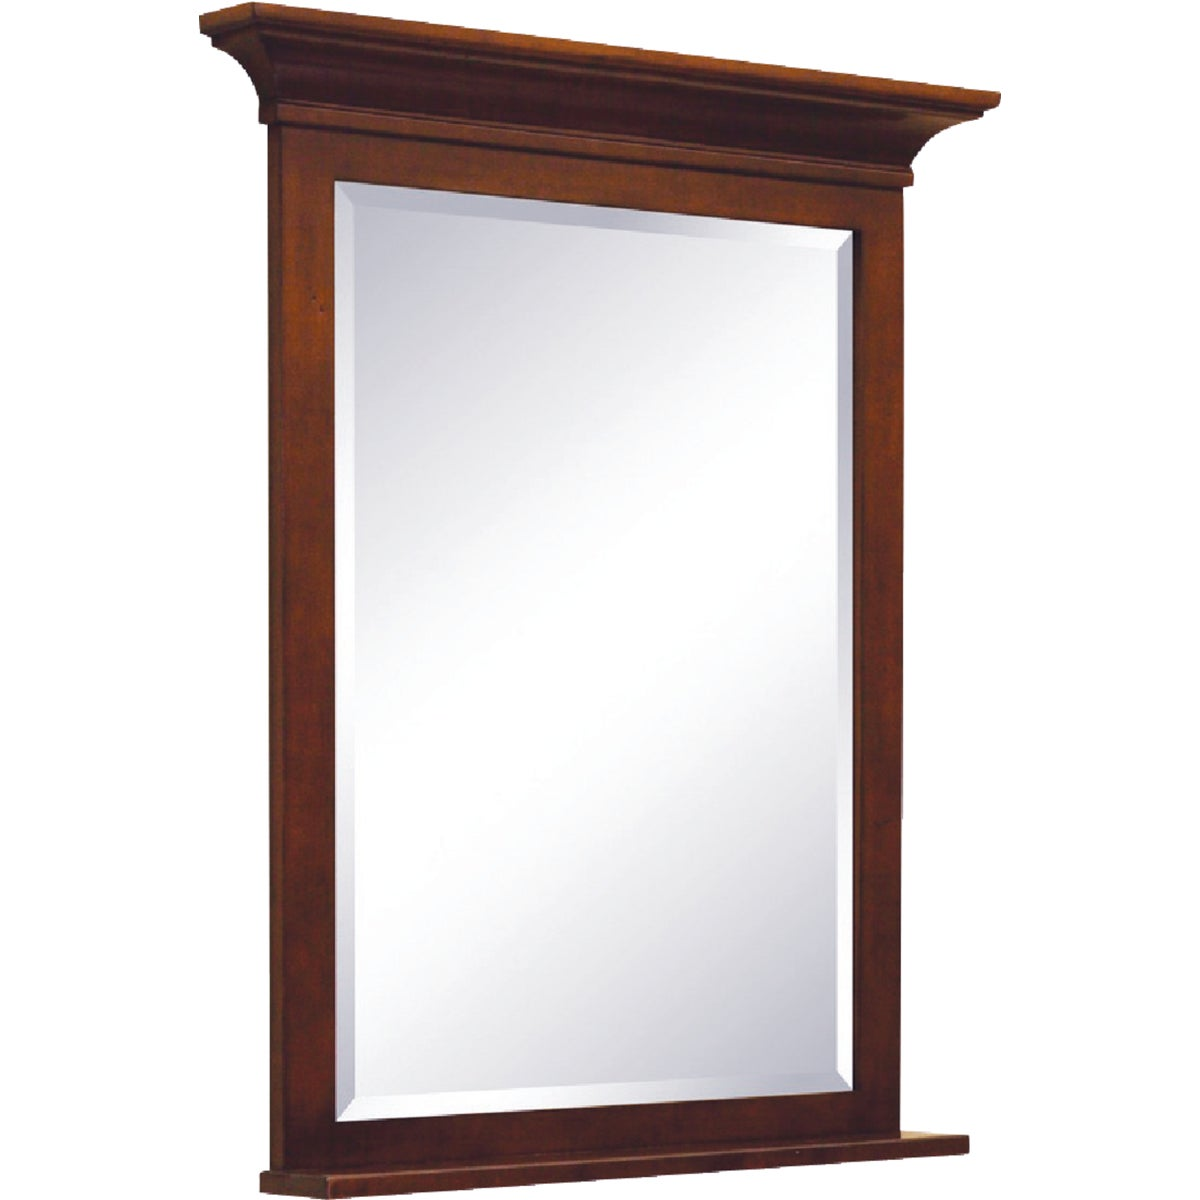 30X36 GRAND HAVEN MIRROR - GH3036MR by Sunnywood Products